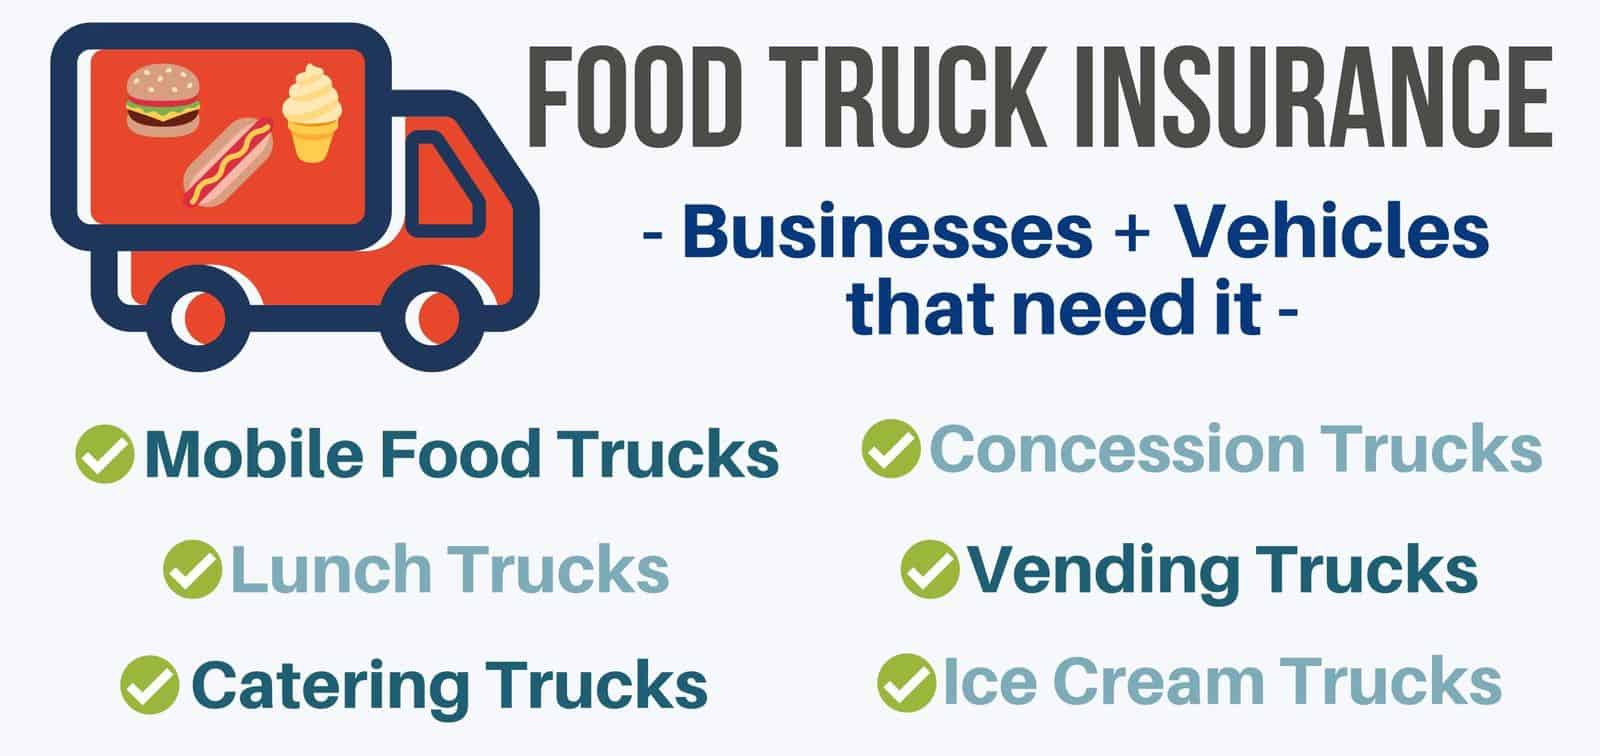 business that need food truck insurance